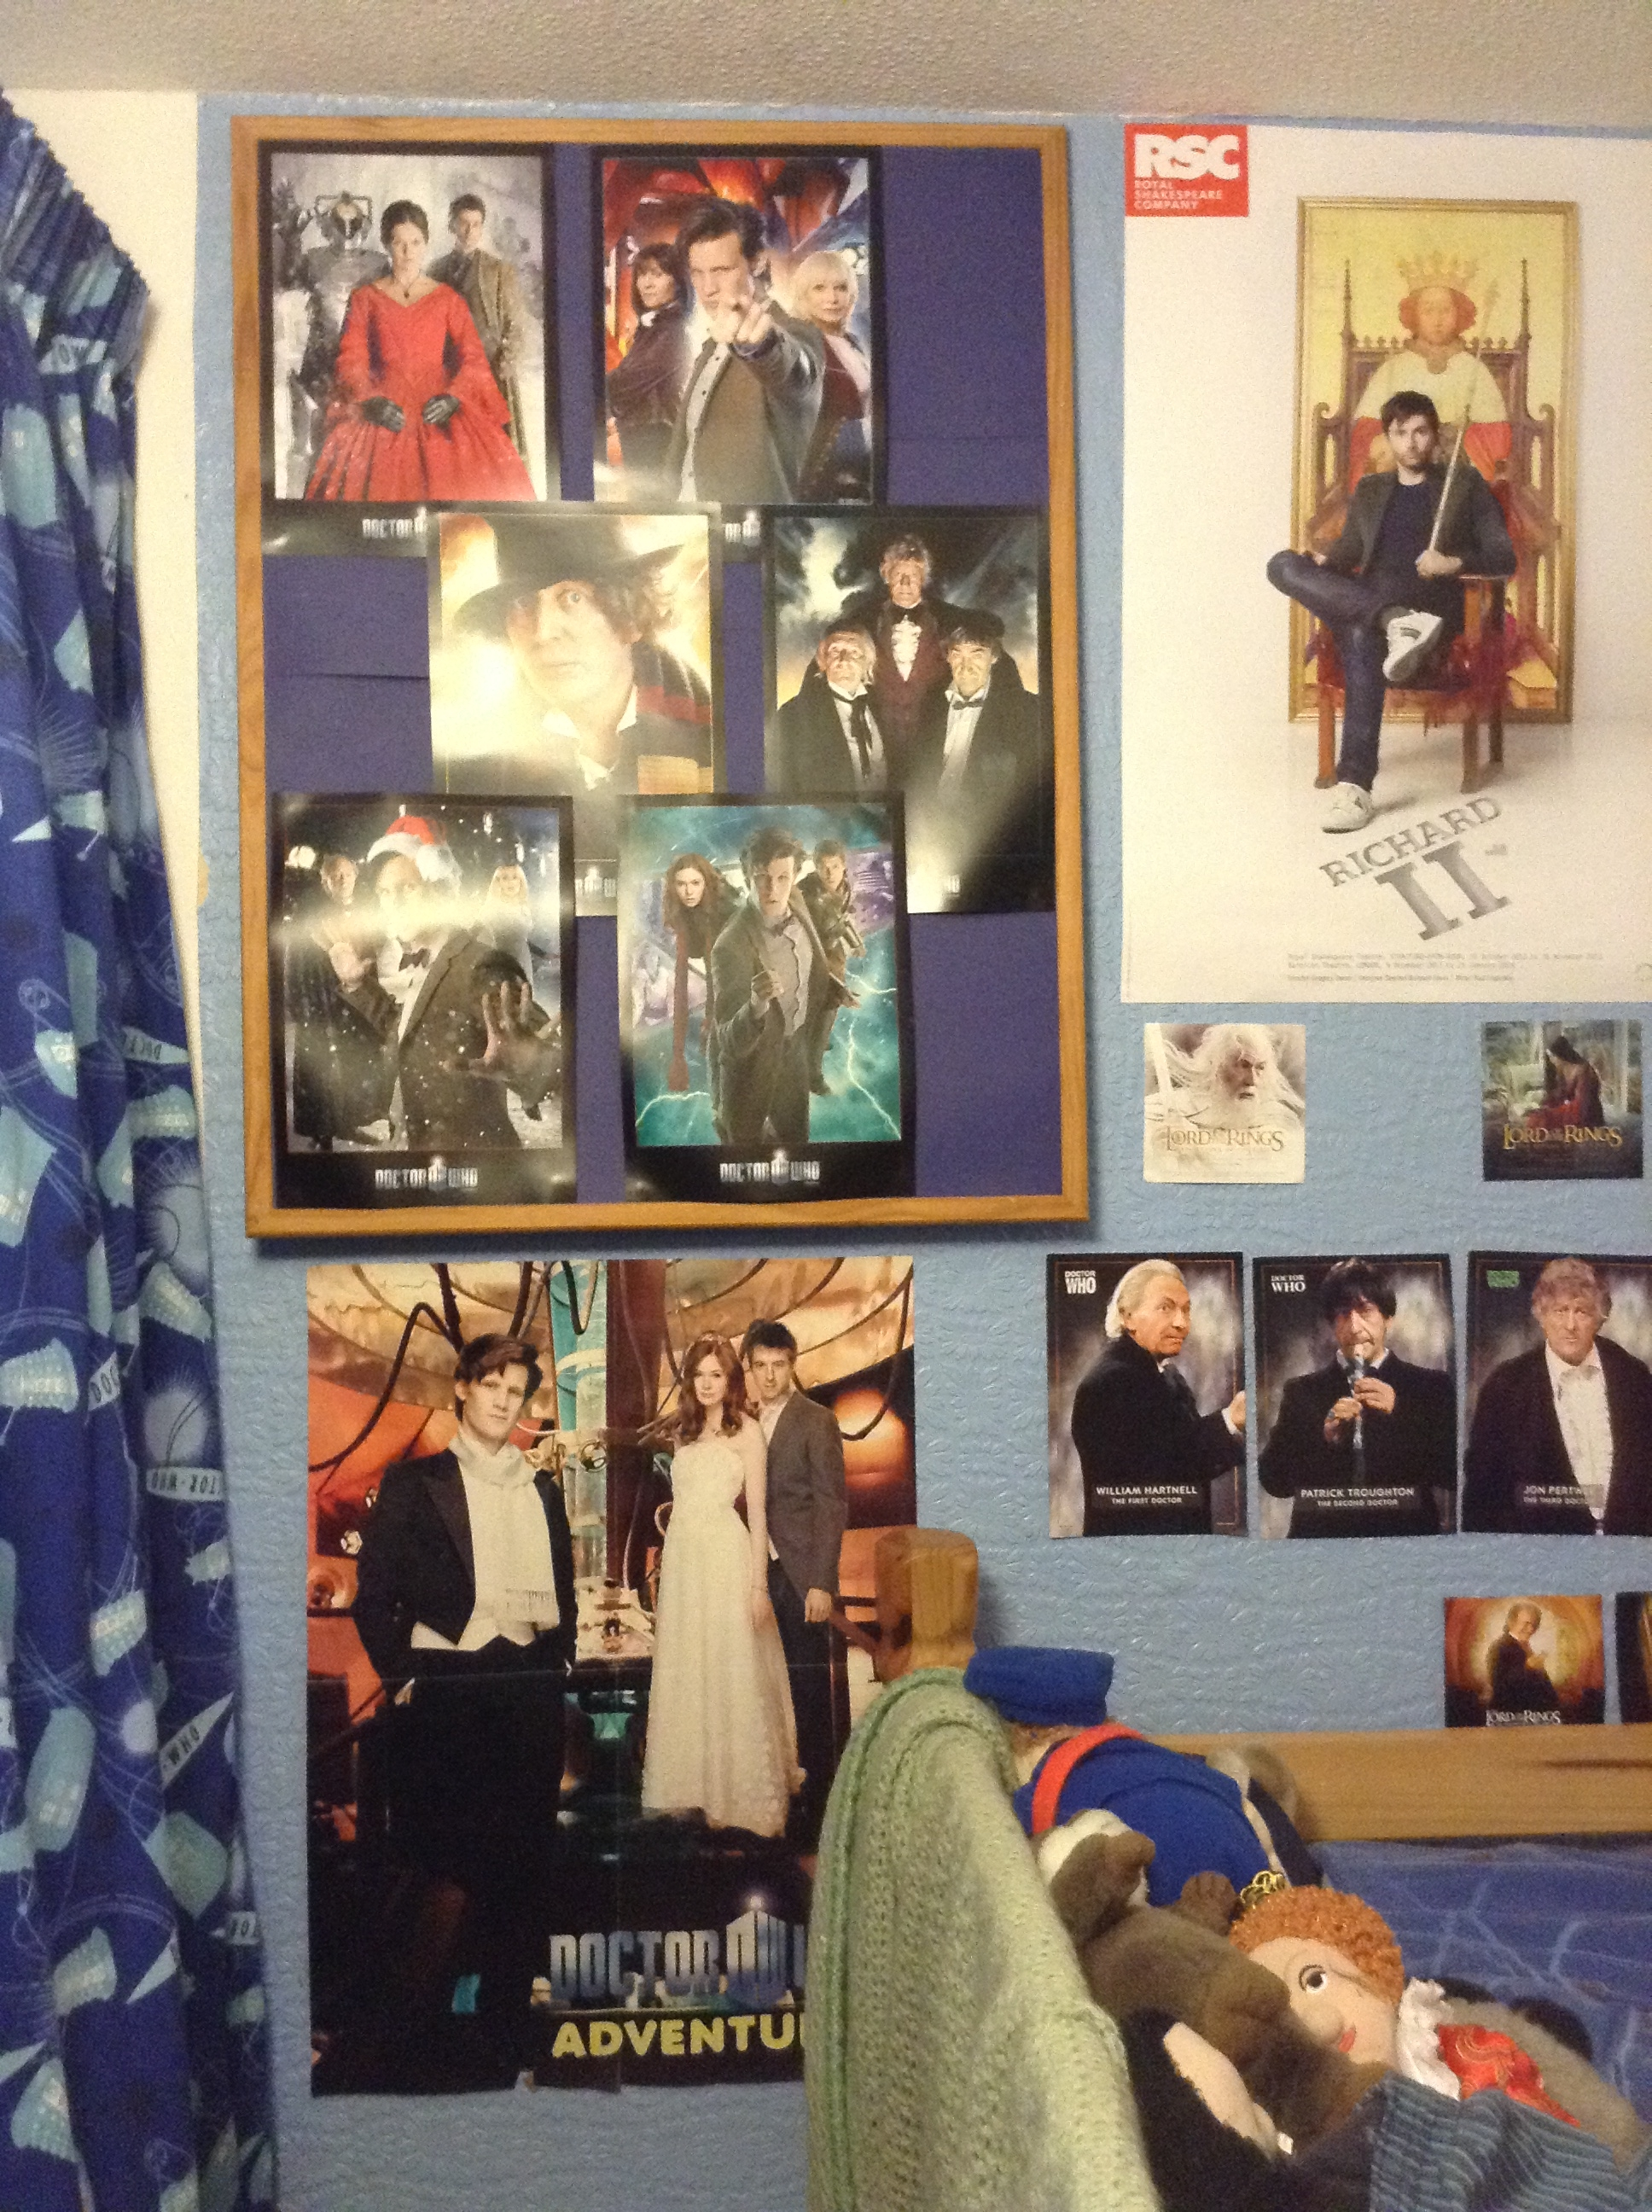 Dr who wallpaper for bedroom wallpaper sportstle for Doctor who bedroom ideas